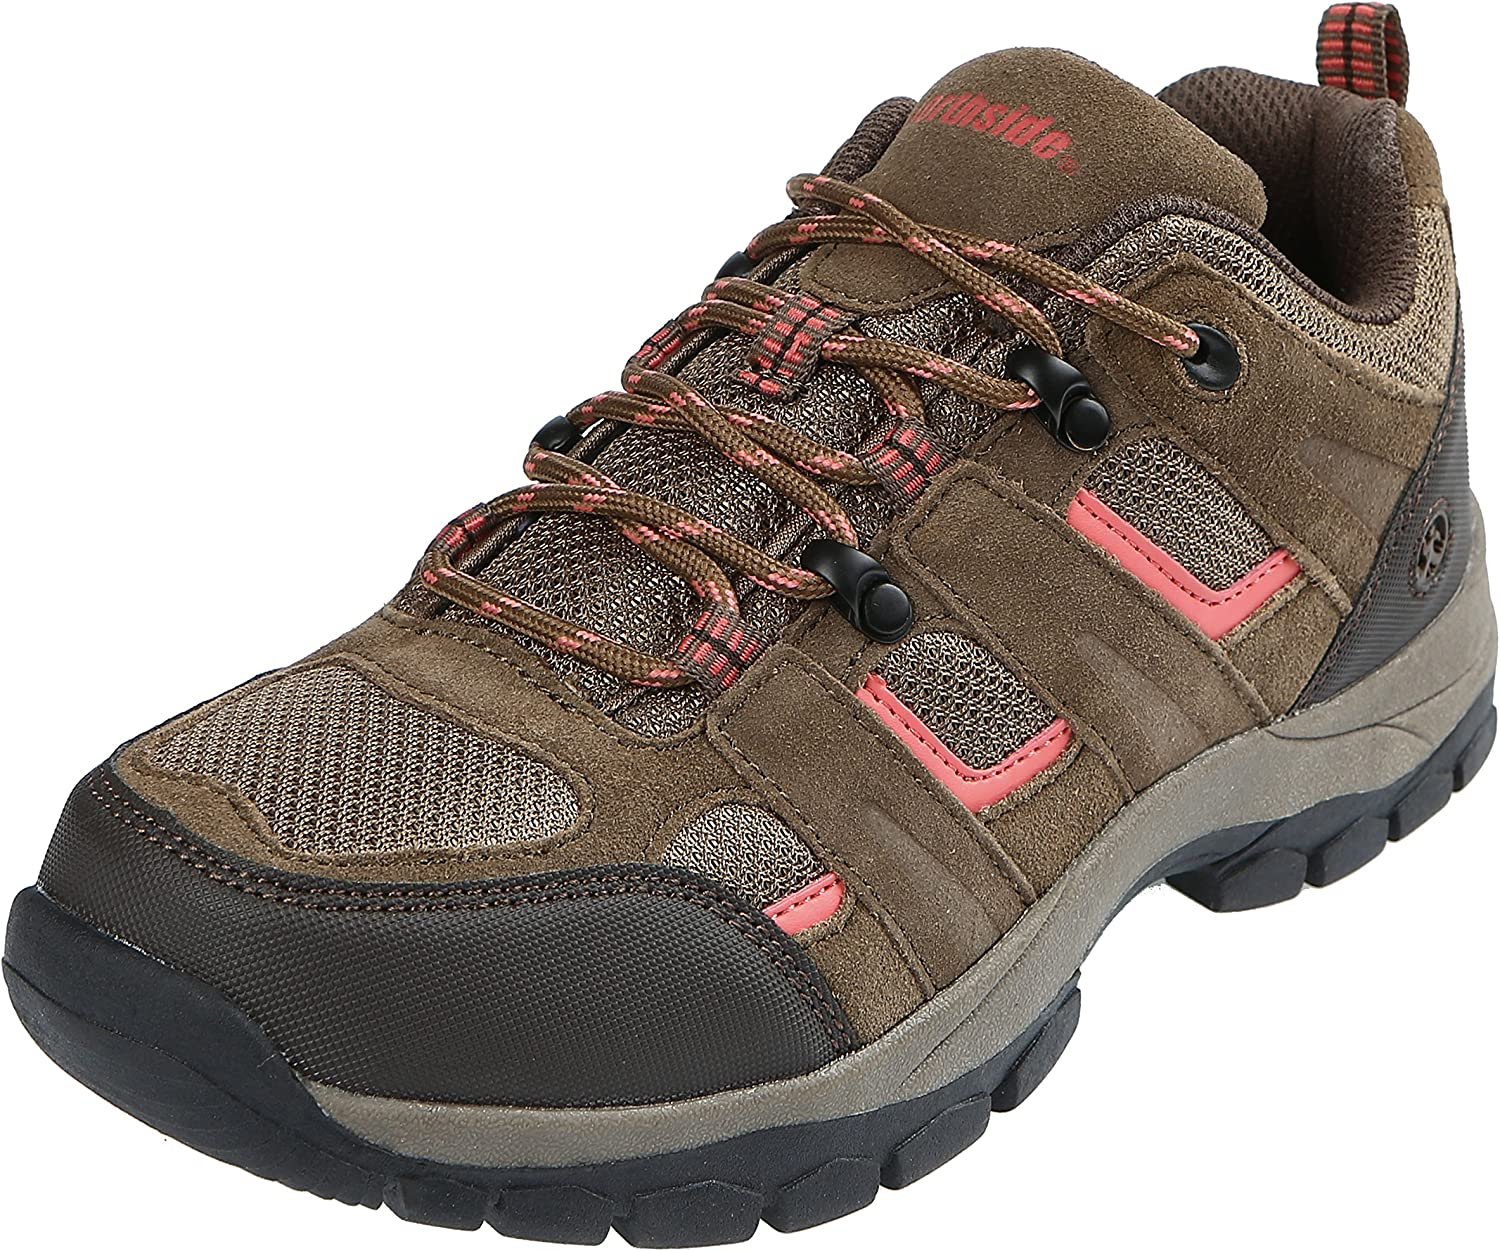 Northside Women's Monroe Low Hiking shoes